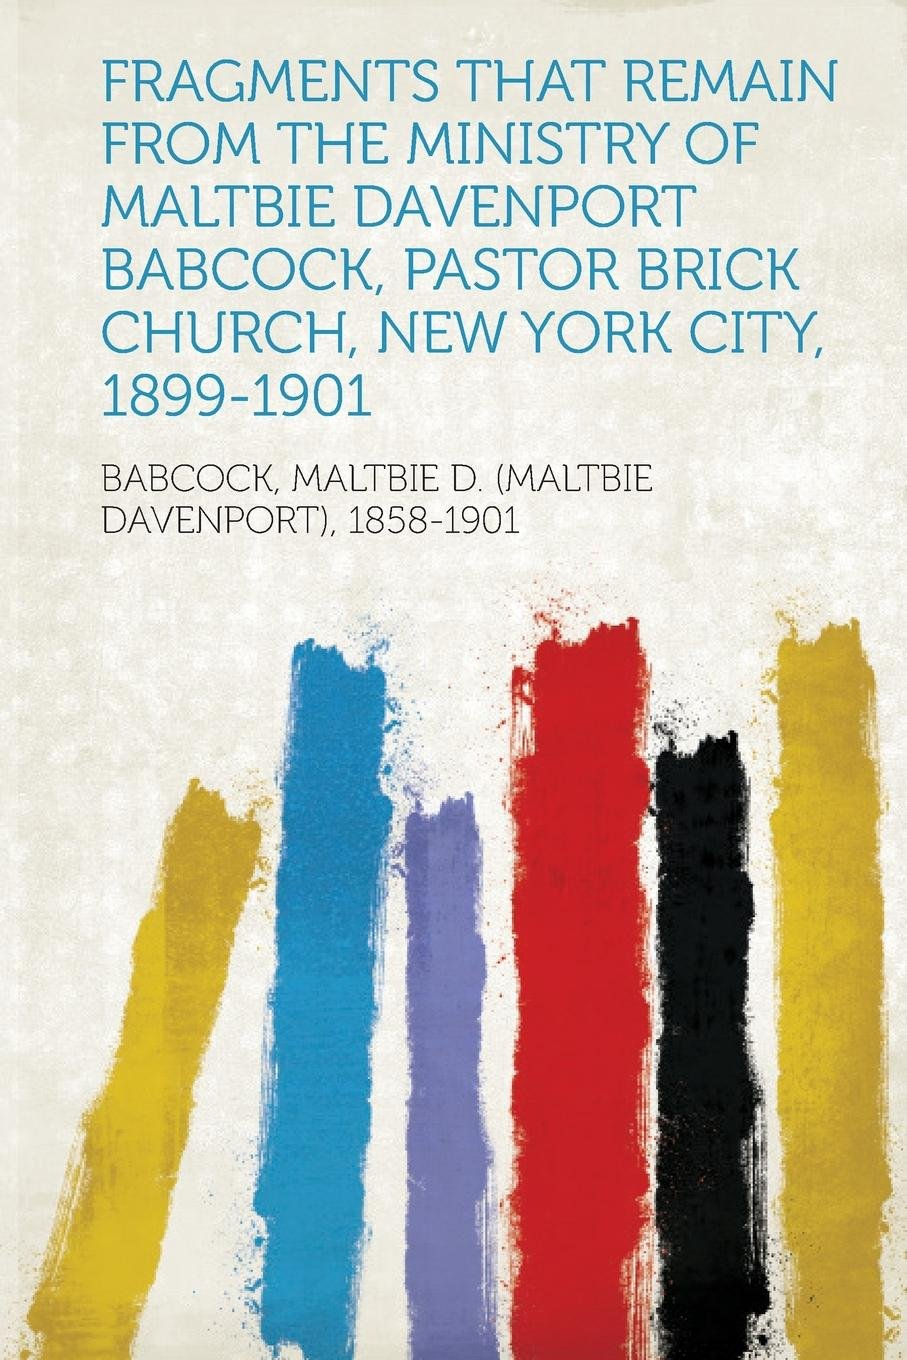 Download Fragments That Remain from the Ministry of Maltbie Davenport Babcock, Pastor Brick Church, New York City, 1899-1901 PDF